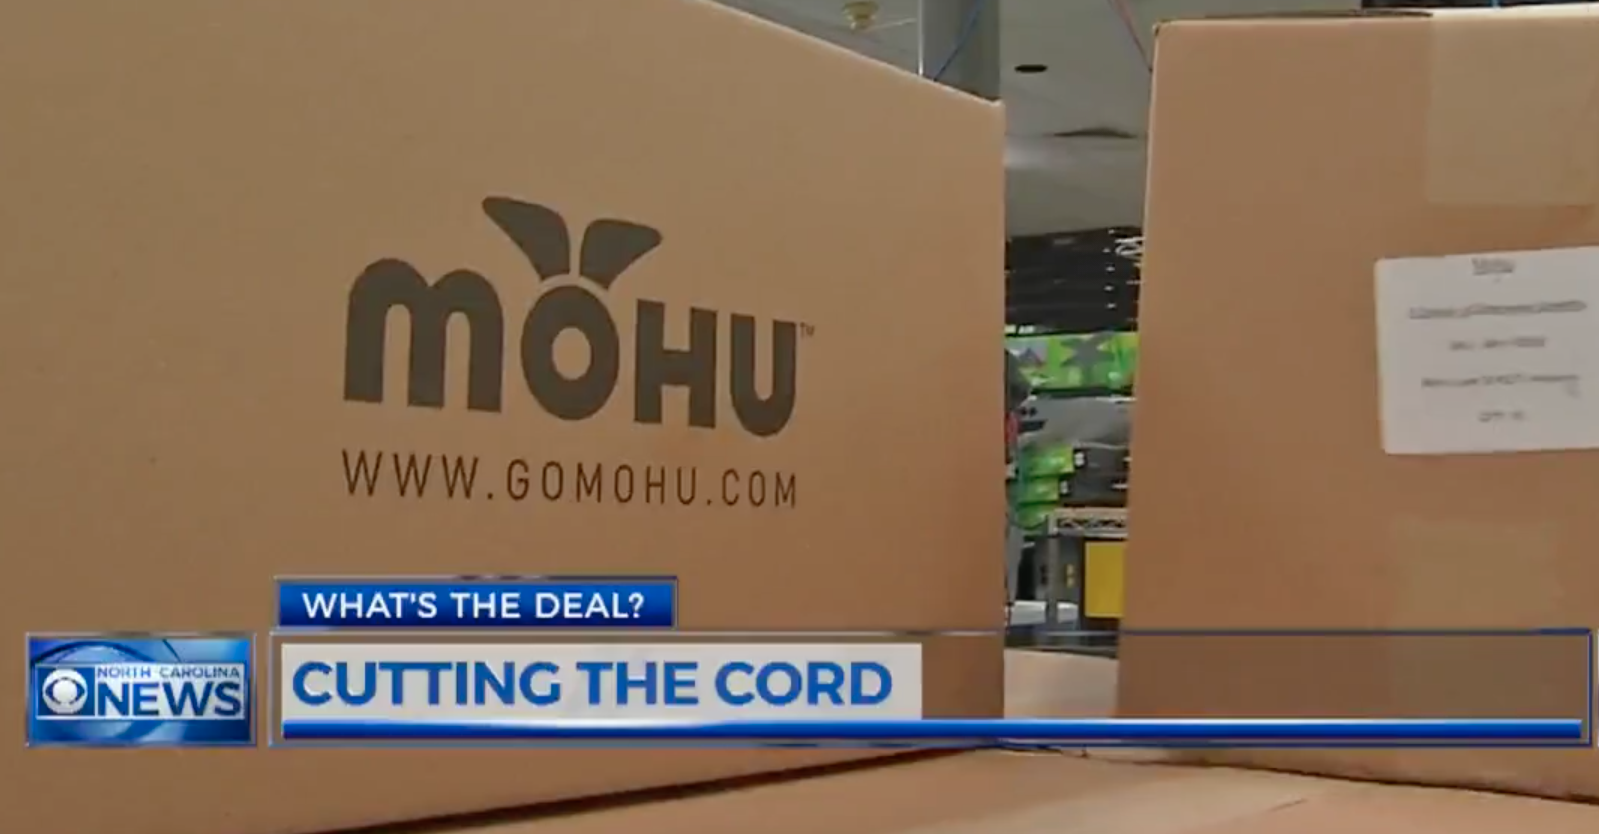 Mohu antenna box as featured on WNCN